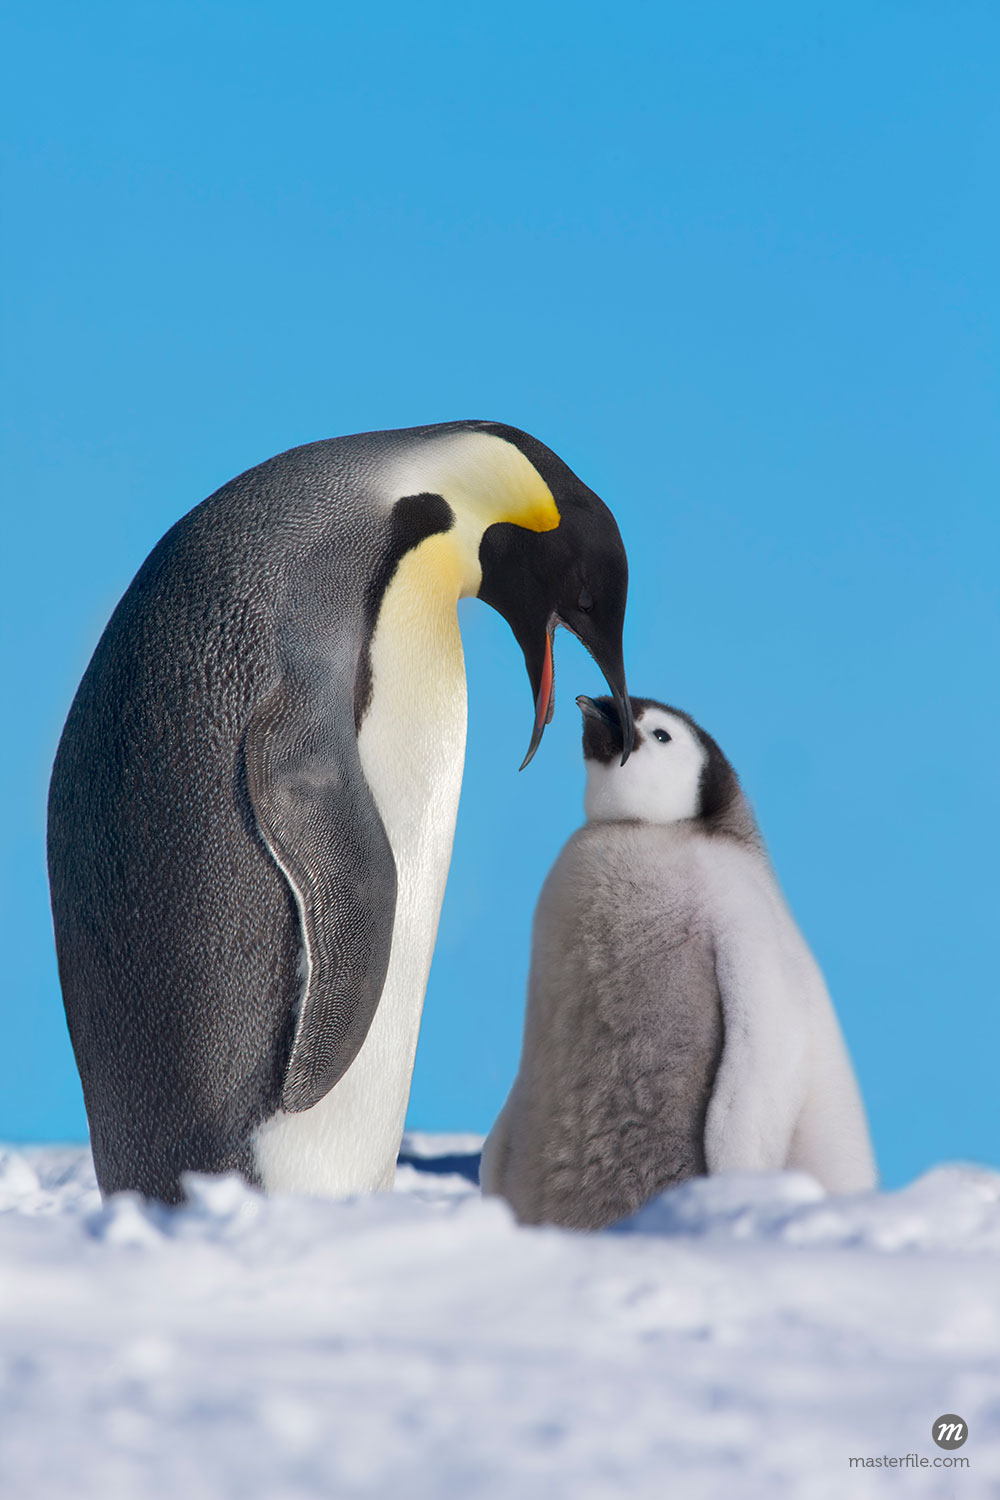 Emperor Penguin with Chick, Riiser-Larsen, Weddell Sea, Antarctica  © Frank Krahmer / Masterfile